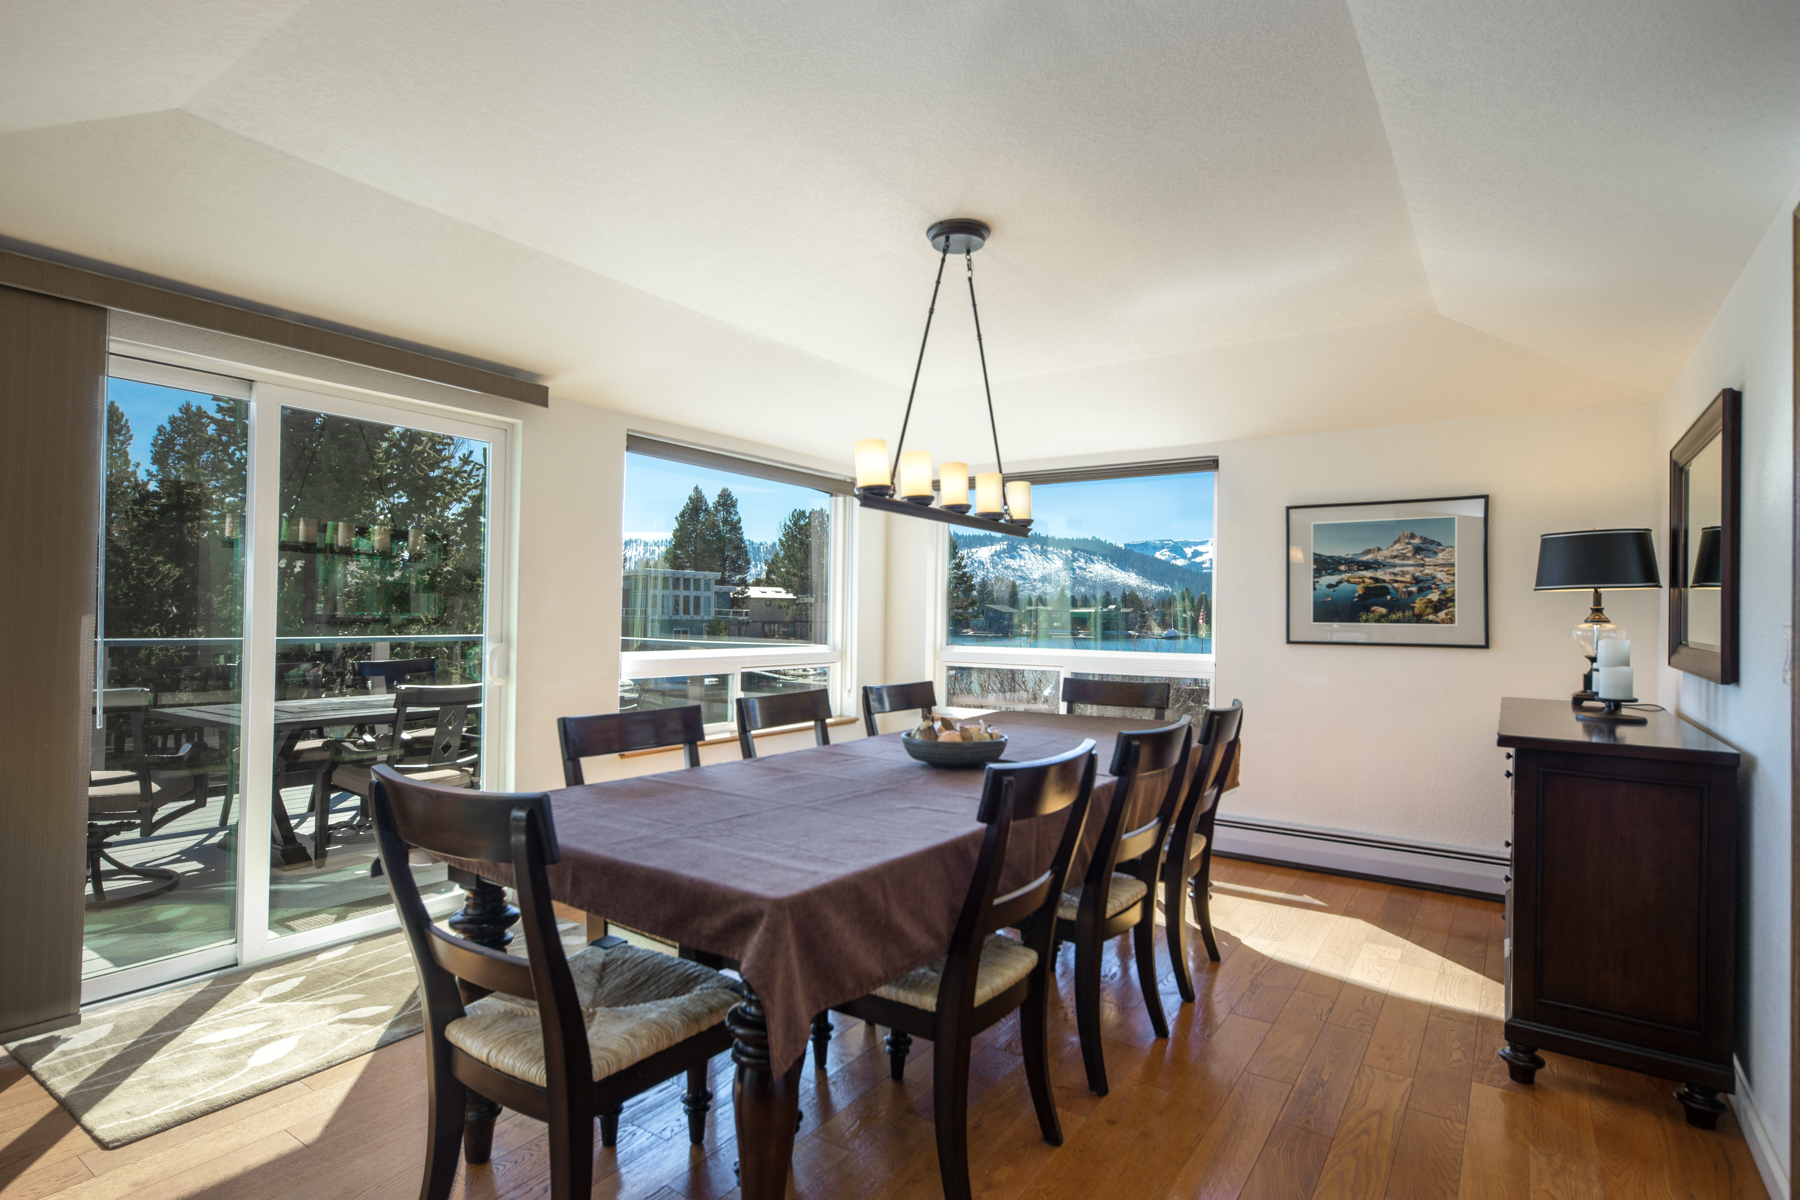 Additional photo for property listing at On the Water Tahoe Style 2188 White Sands Drive South Lake Tahoe, California 96150 United States